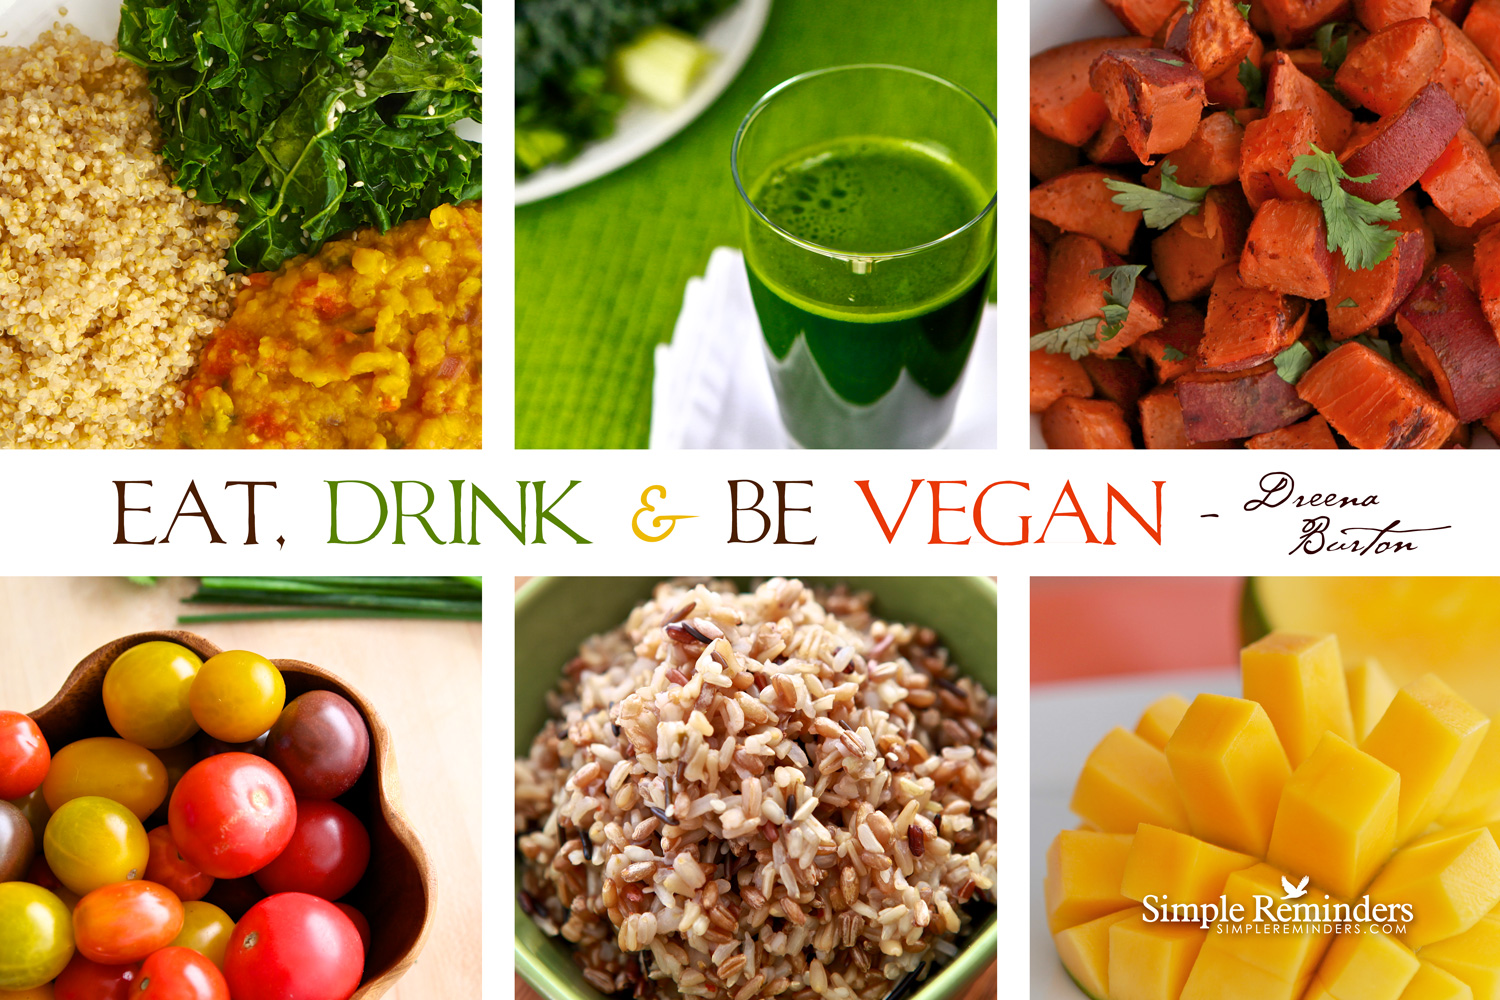 eat, drink, & BE vegan!